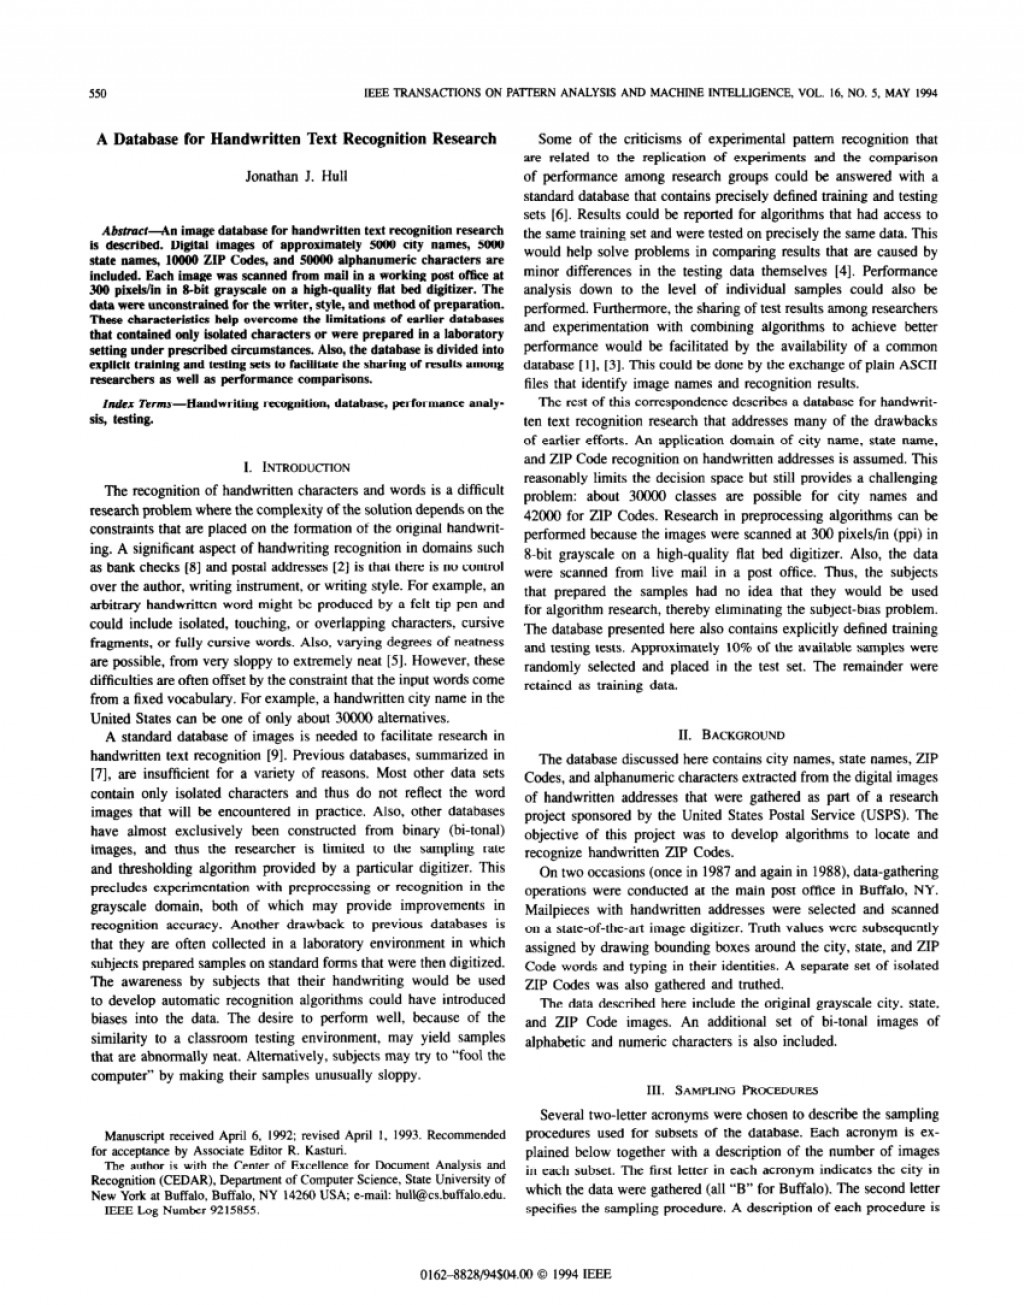 005 Database Research Paper Ieee Unbelievable Security Large